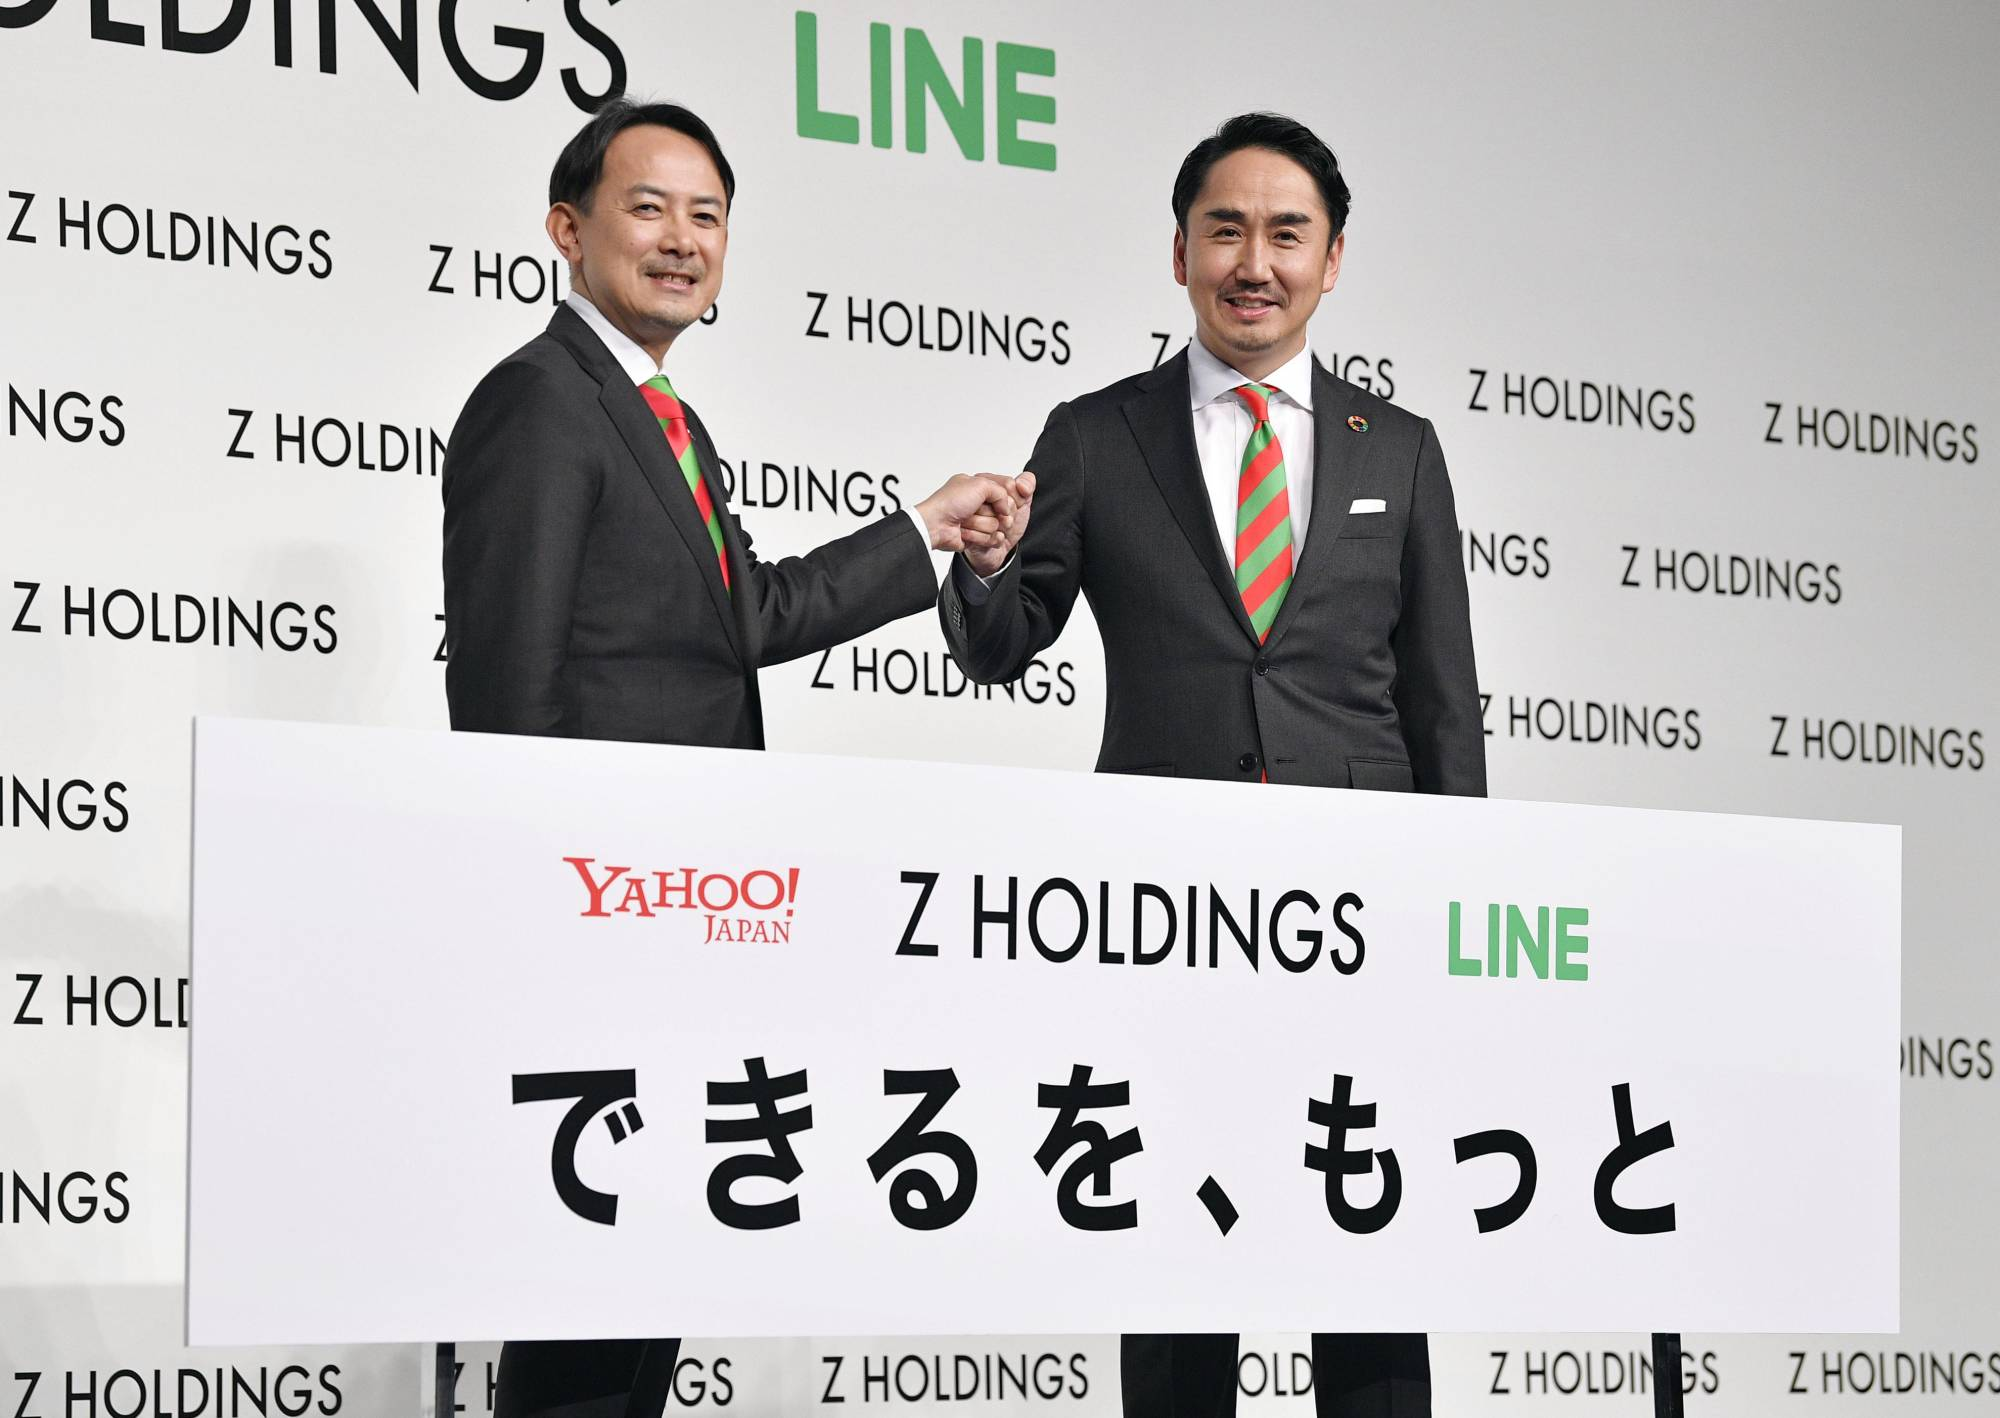 Kentaro Kawabe (left), president of Yahoo Japan operator Z Holdings Corp., and Line Corp. President Takeshi Idezawa hold a news conference in Tokyo on Monday. | KYODO